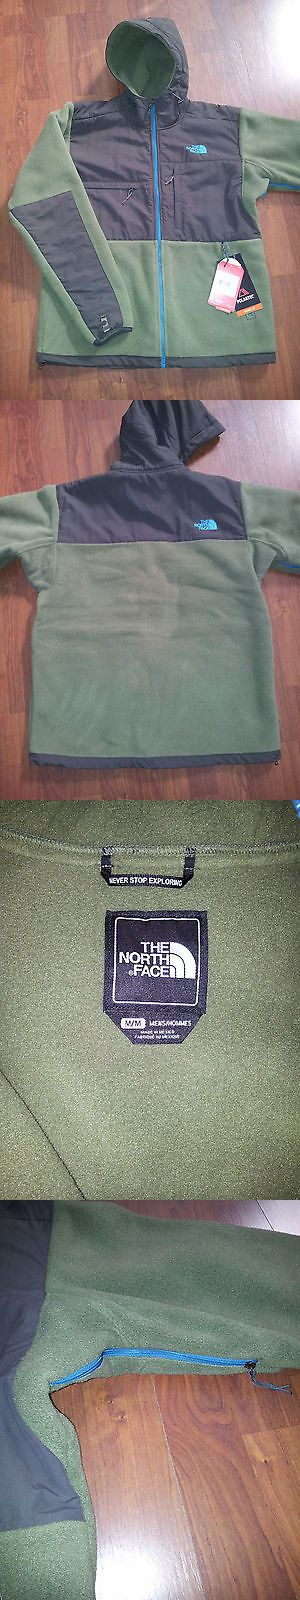 Coats and Jackets 181358: Nwt North Face Denali Hoodie Mens Jacket Olive Green Medium -> BUY IT NOW ONLY: $129.99 on eBay!